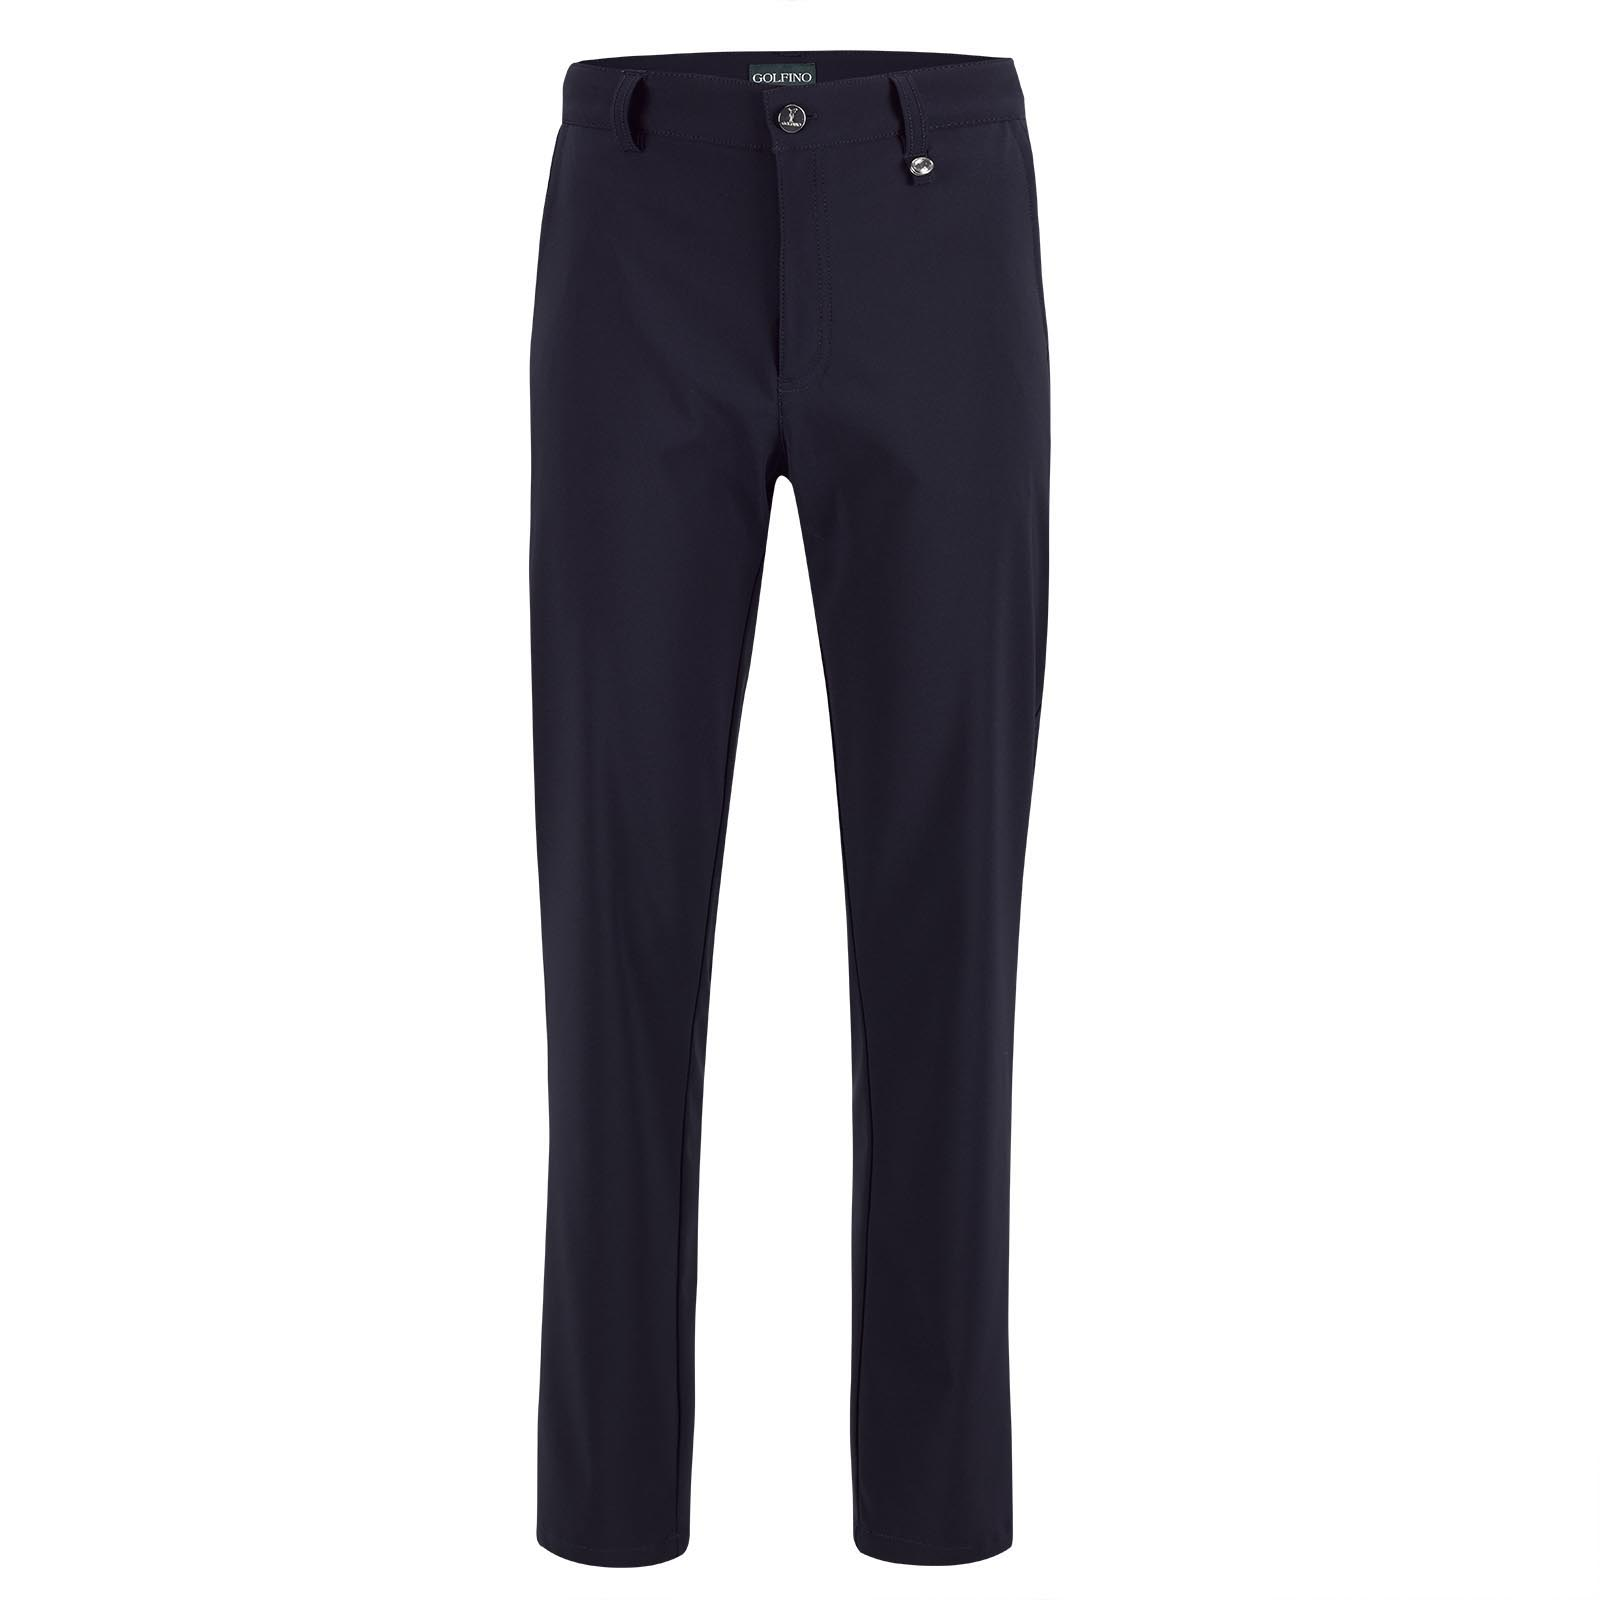 Ladies' 7/8 golf pants made from water-repellent stretch material